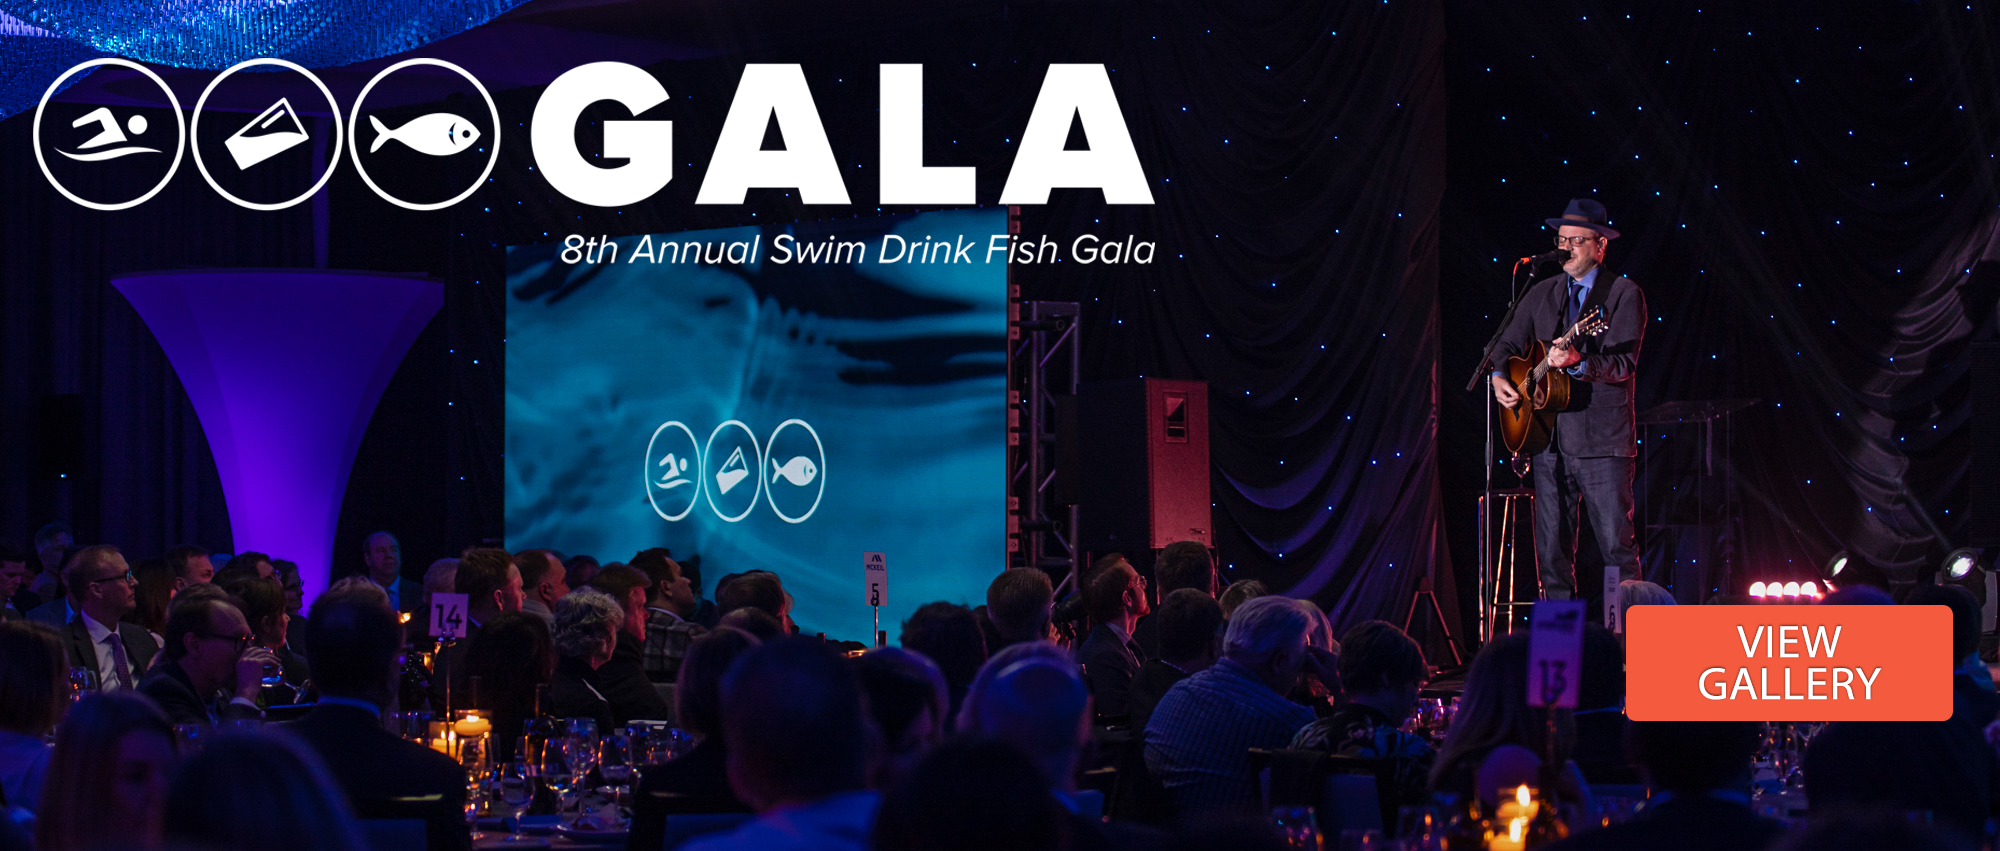 Thank you for your support - Swim Drink Fish Gala 2019